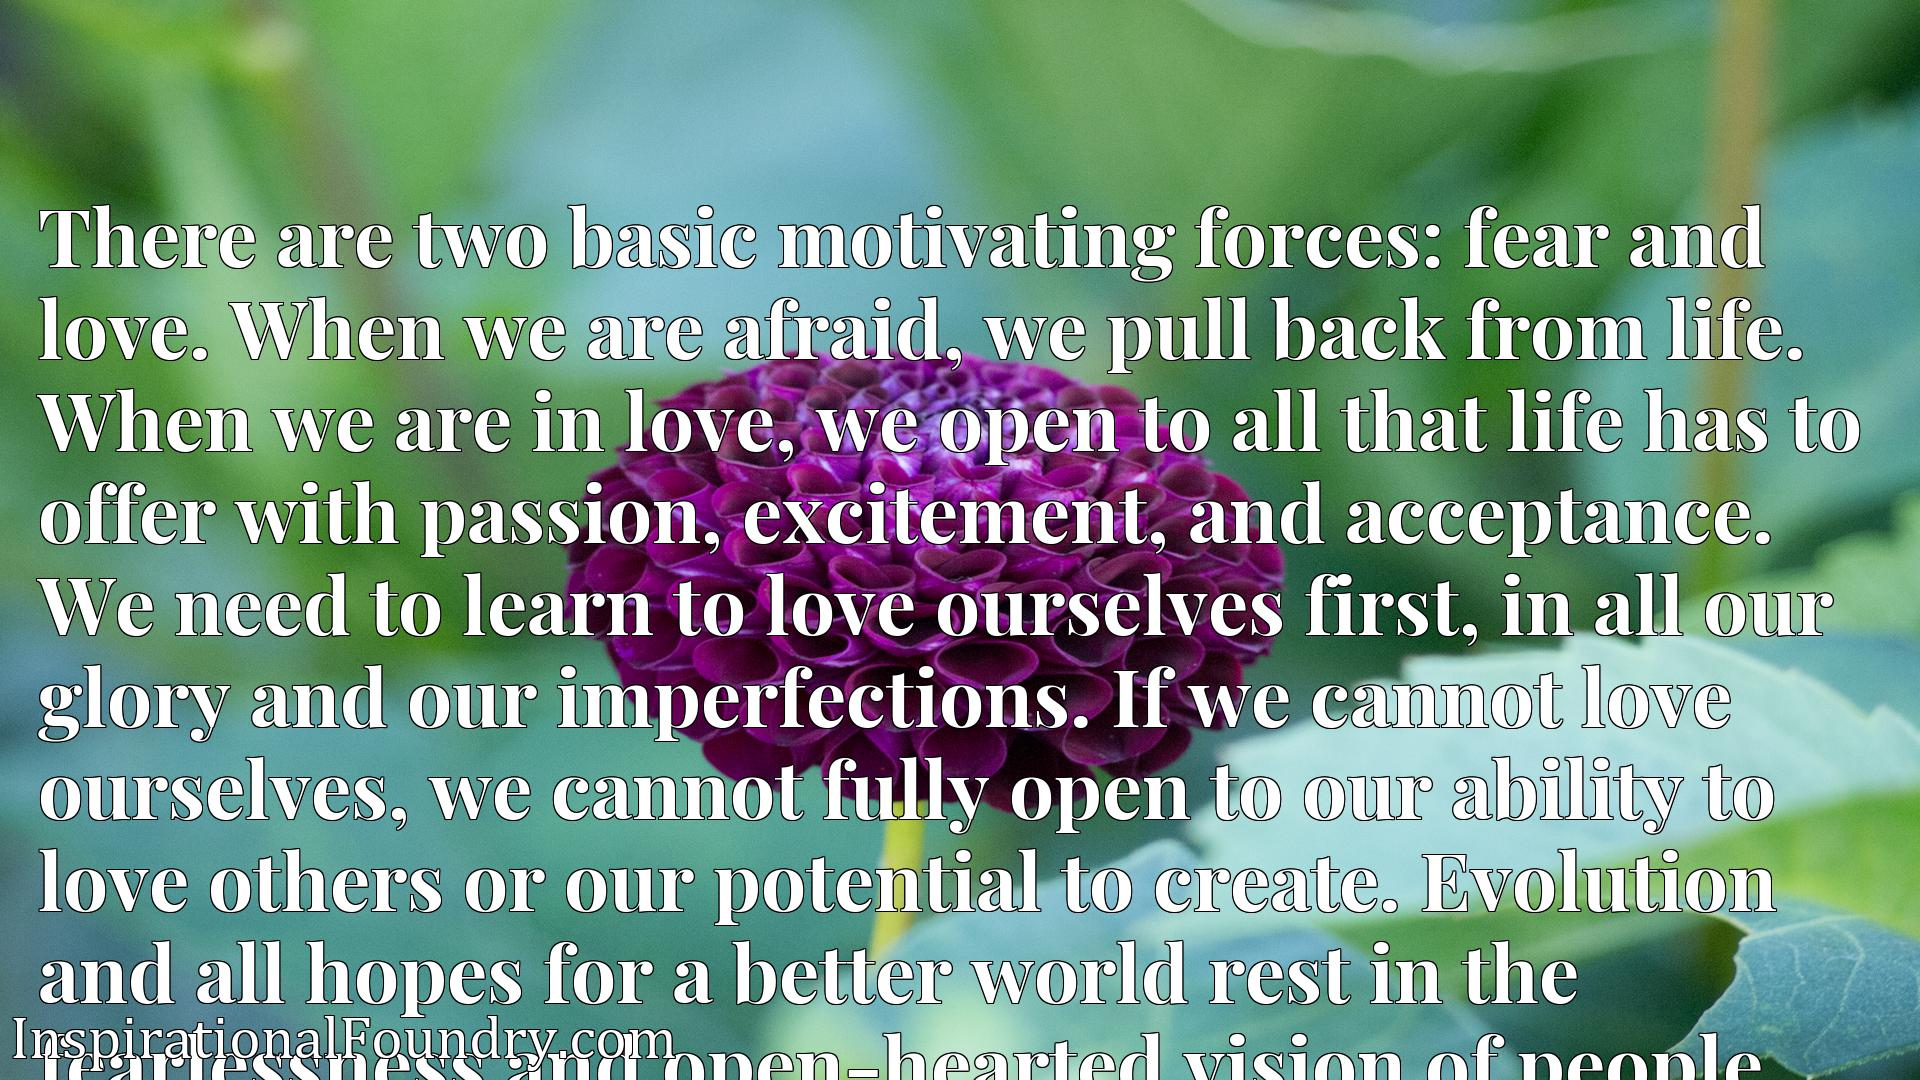 There are two basic motivating forces: fear and love. When we are afraid, we pull back from life. When we are in love, we open to all that life has to offer with passion, excitement, and acceptance. We need to learn to love ourselves first, in all our glory and our imperfections. If we cannot love ourselves, we cannot fully open to our ability to love others or our potential to create. Evolution and all hopes for a better world rest in the fearlessness and open-hearted vision of people who embrace life.